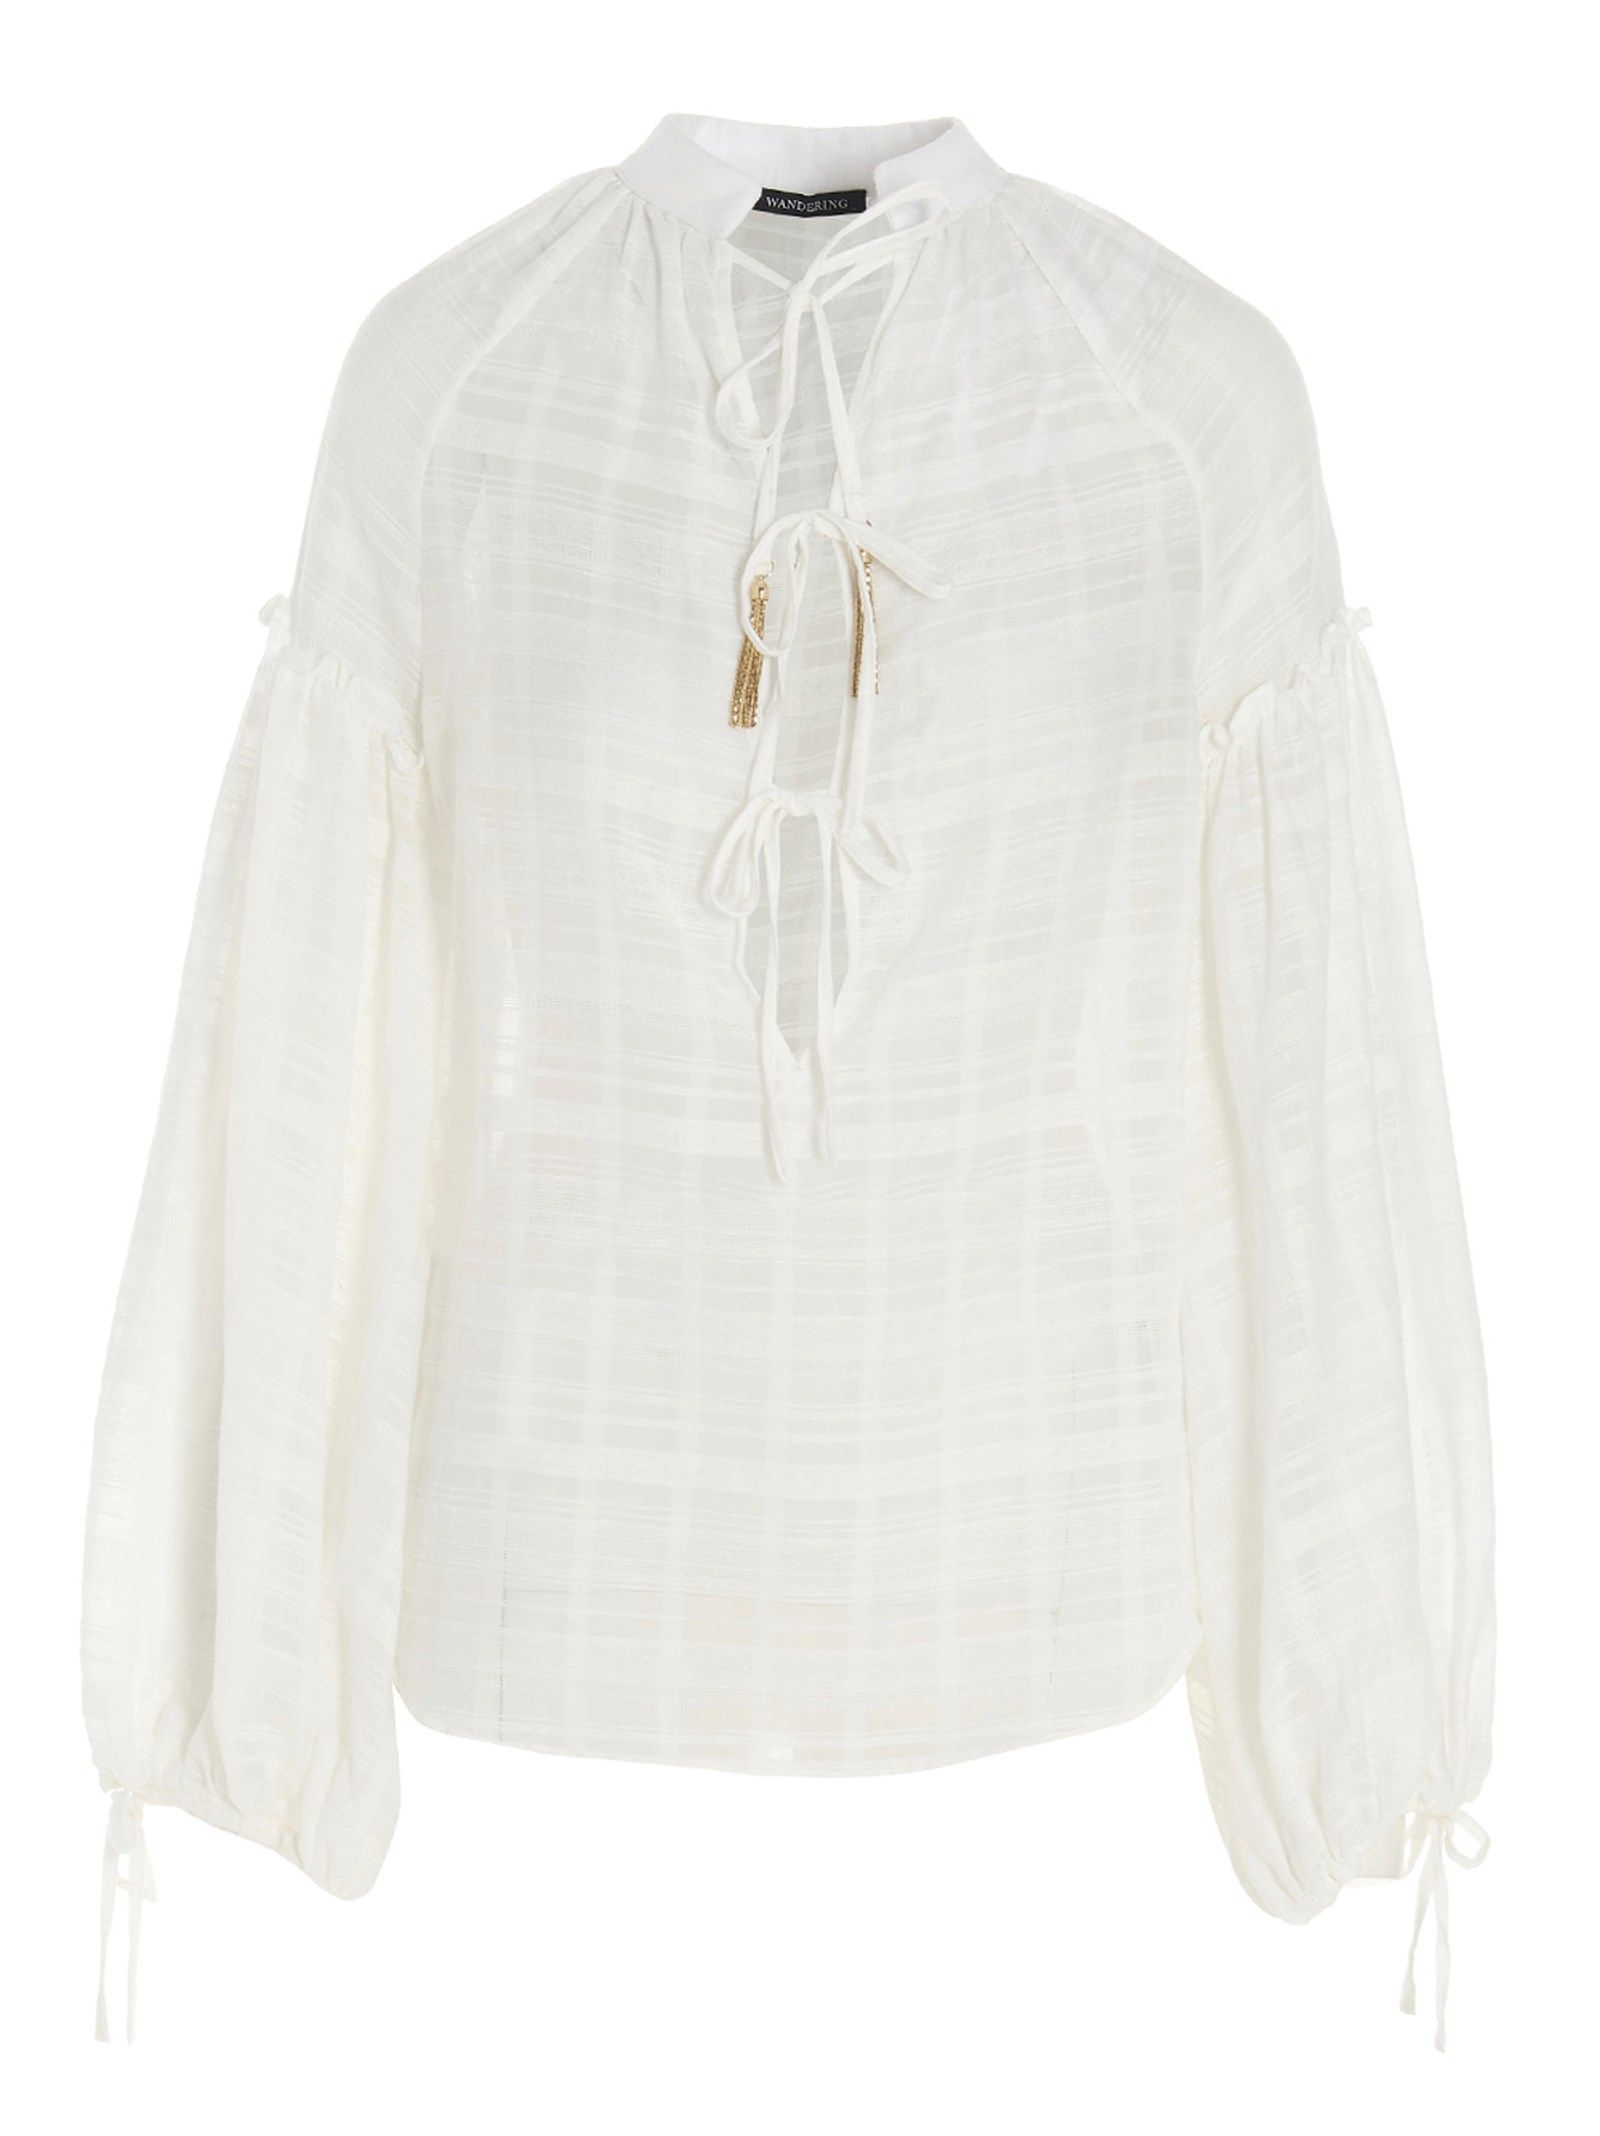 Wandering Blouses WANDERING WOMEN'S WGS21205081 WHITE COTTON BLOUSE